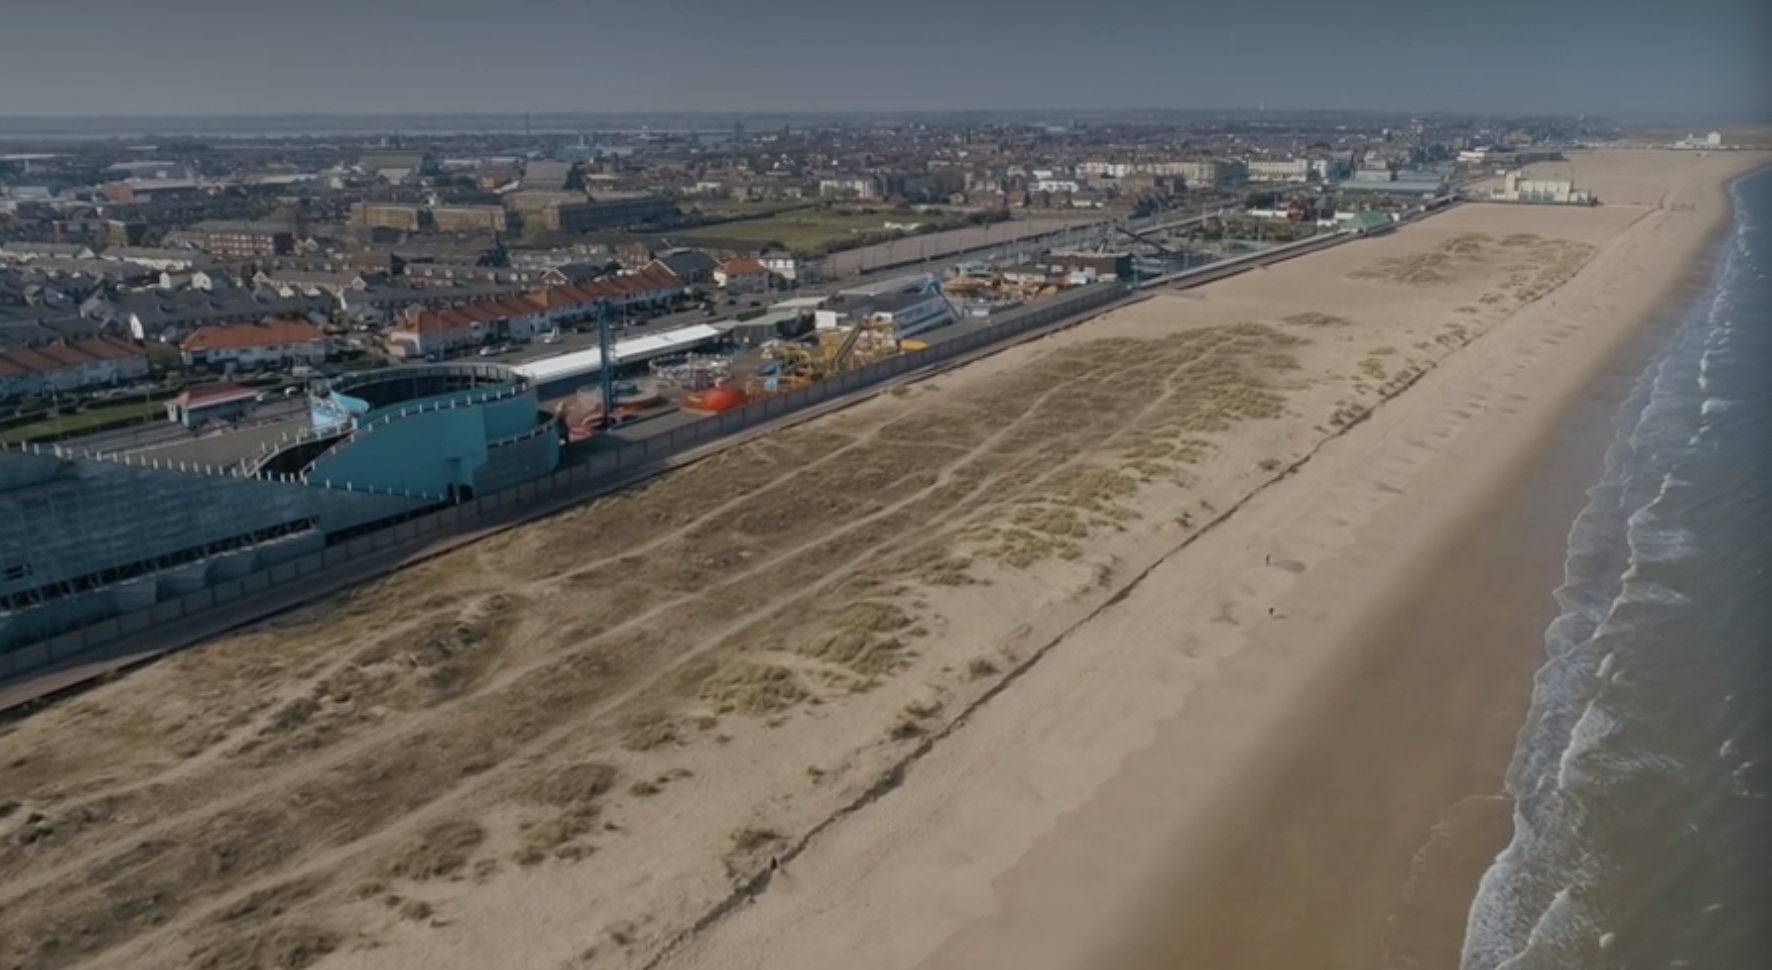 Deserted beach of Great Yarmouth